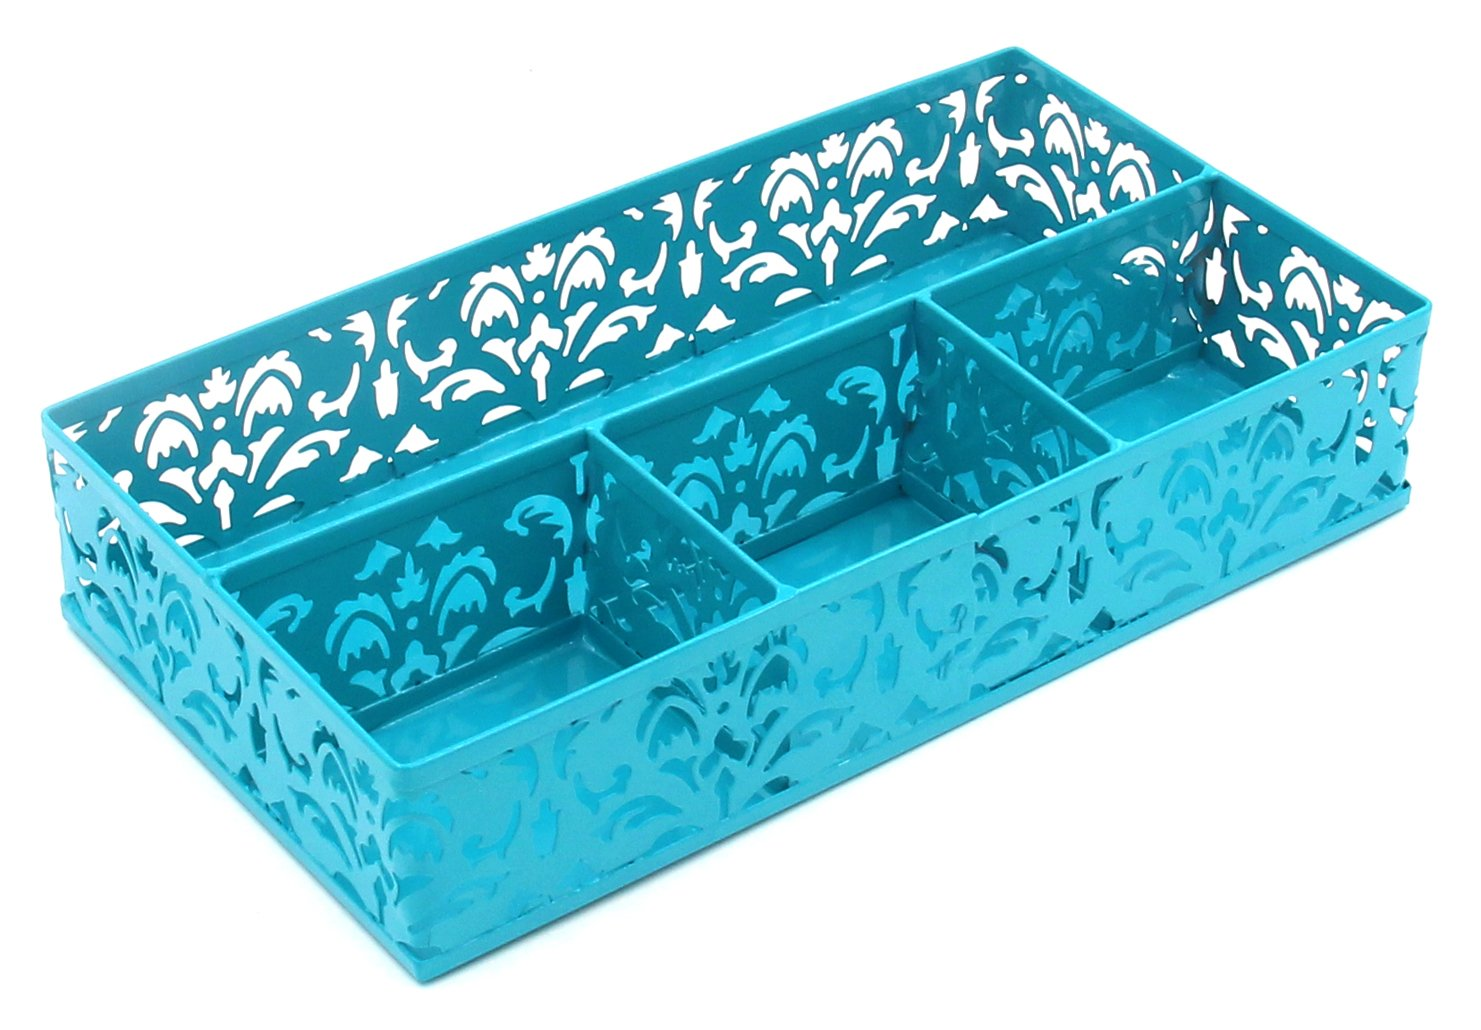 EasyPAG Metal Desk Drawer Organizer,Dark Teal